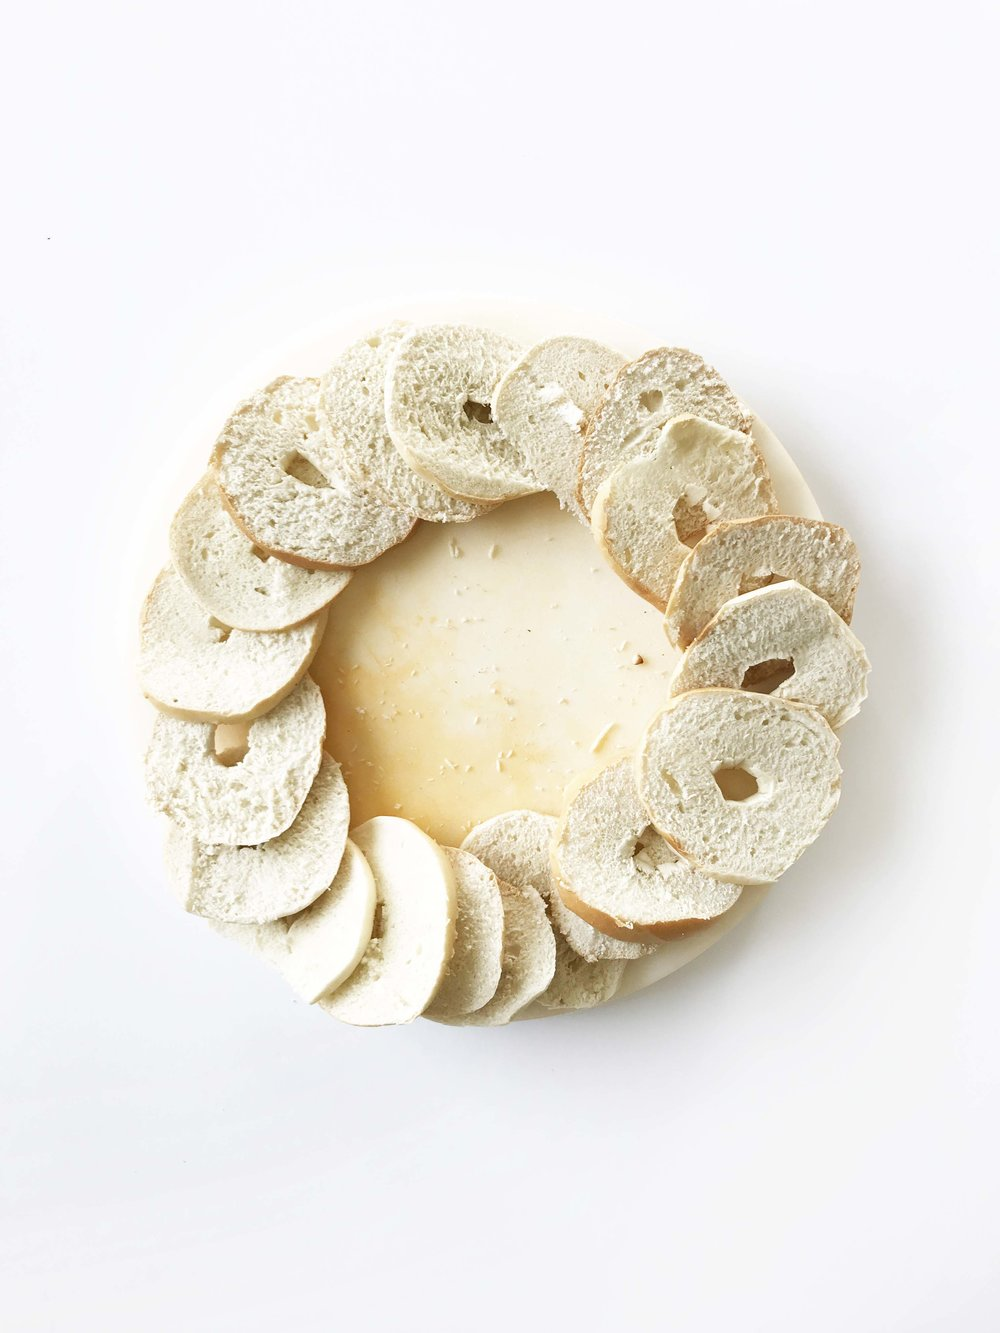 mermaid-treasure-bagel-crisps3.jpg